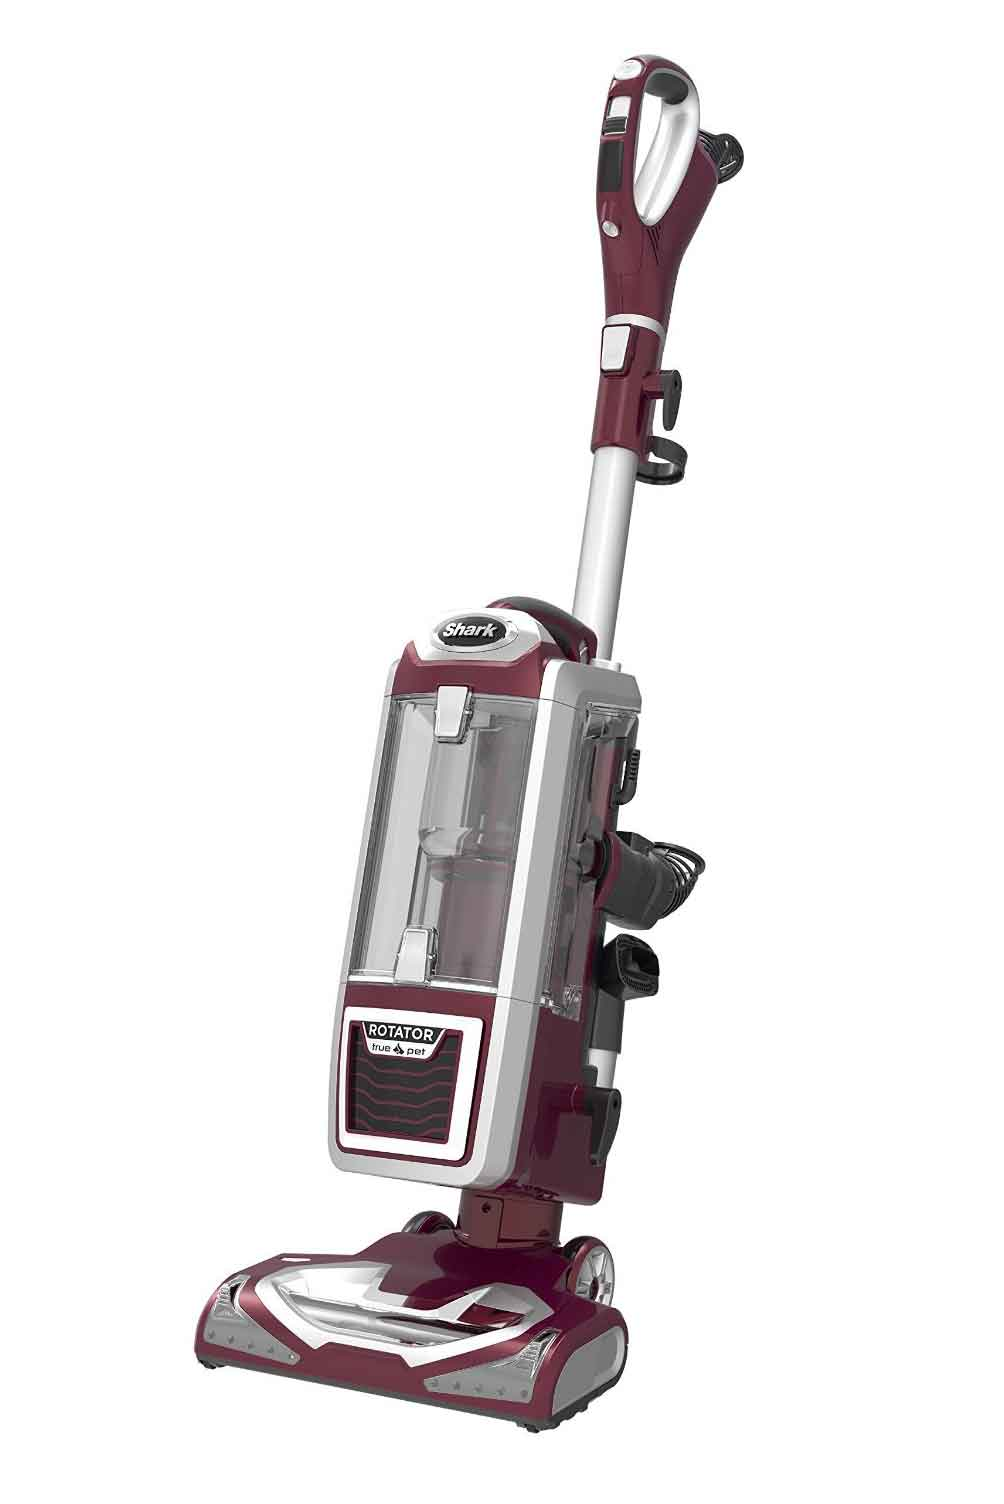 The Best Shark Vacuums - NerdWallet